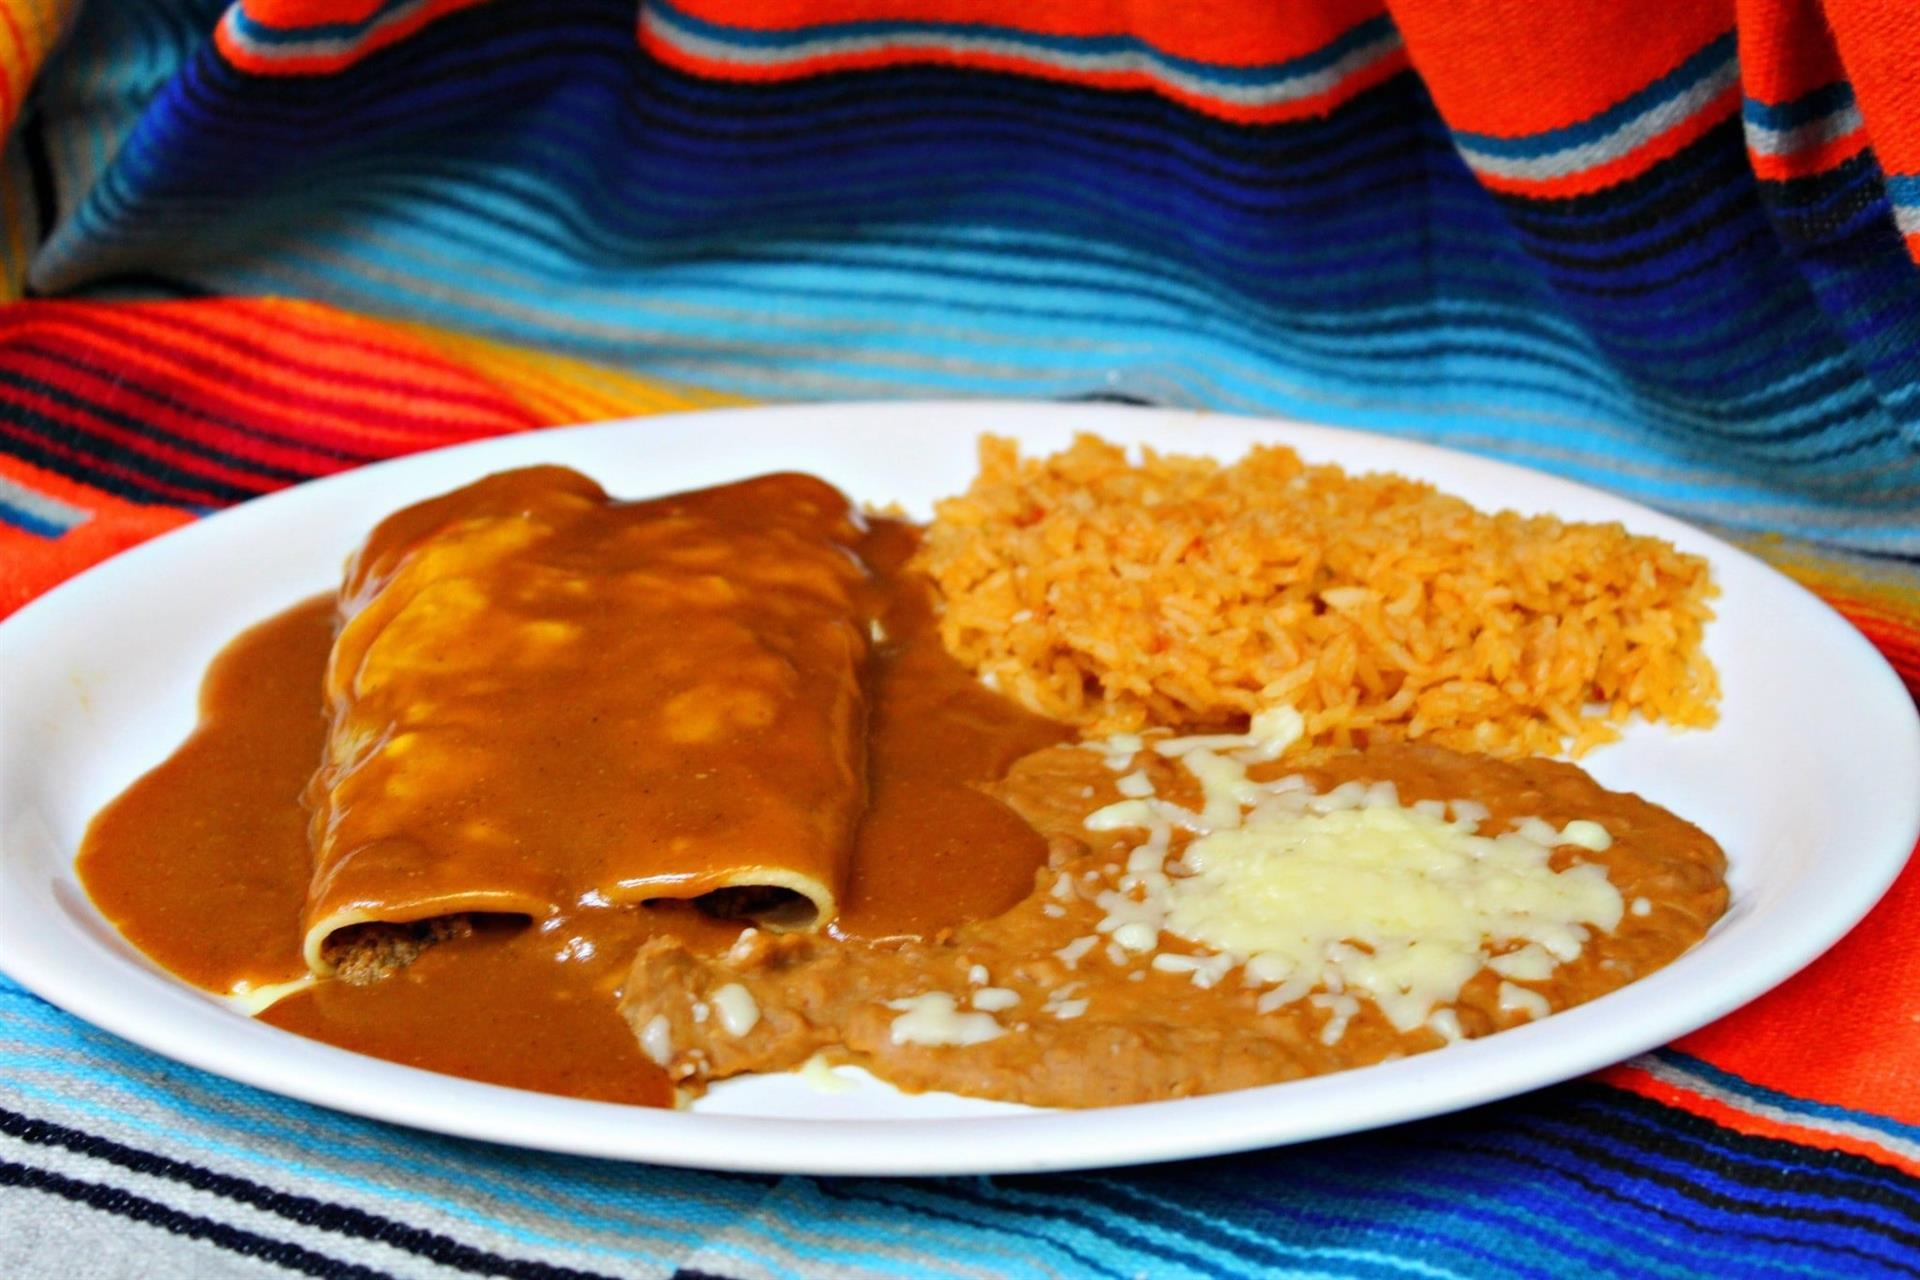 two enchiladas topped with sauce with a side of rice and beans